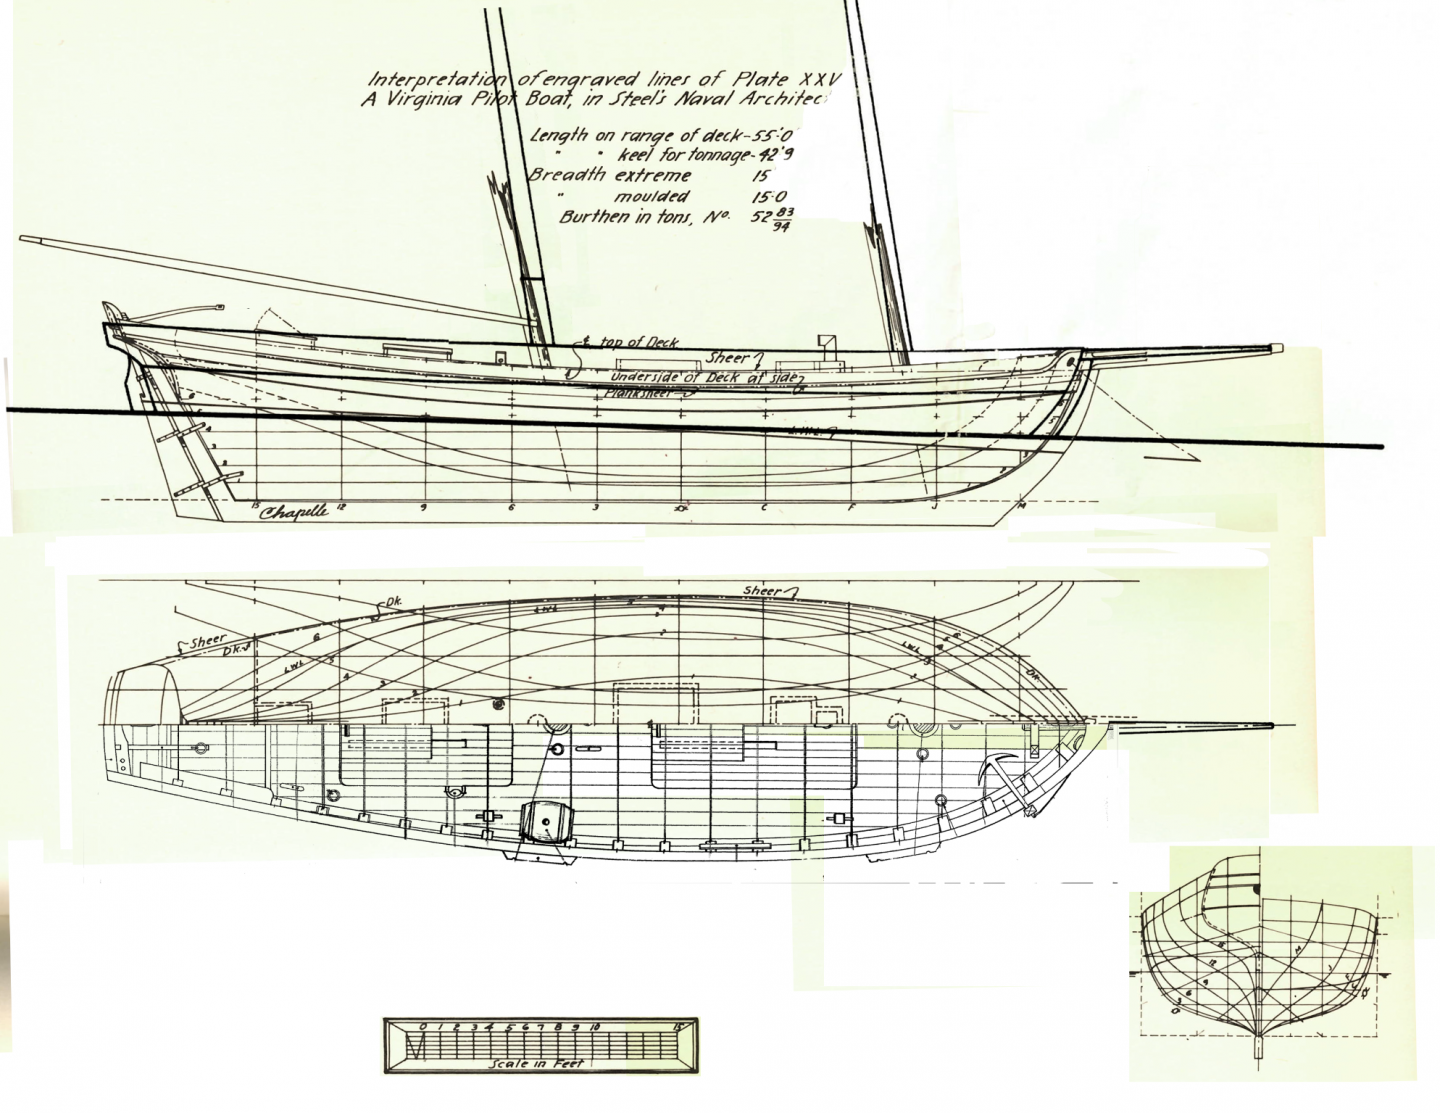 1446985333_steelvirginiapilotboatvsALSwiftsideanddeck.thumb.png.c557bd7117055024d85a750a9f7acd47.png